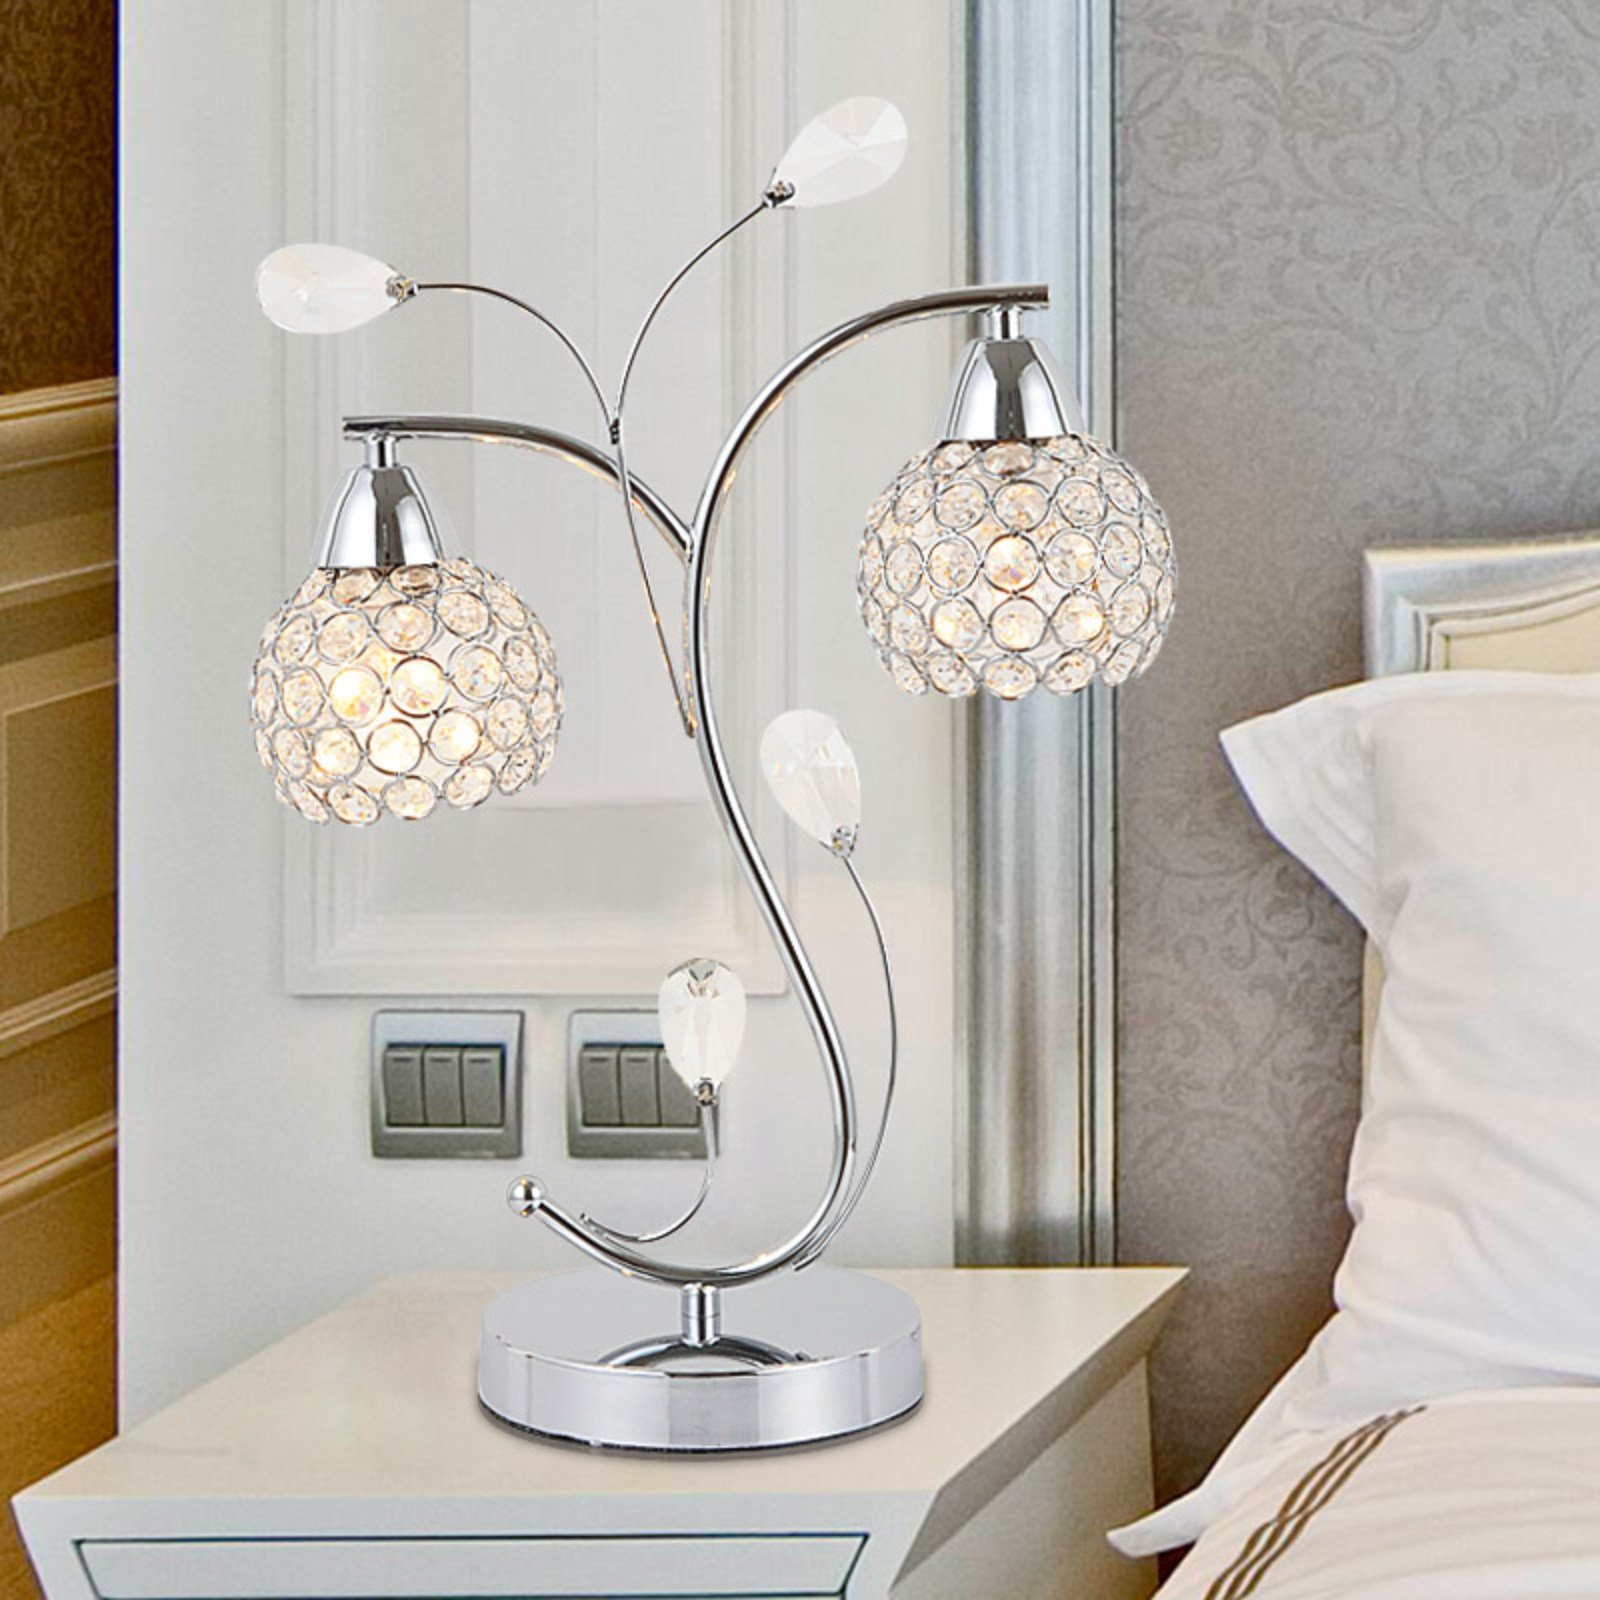 Bedroom Side Table Lights 10 Great Spots To Place Side Table Lamps Warisan Lighting